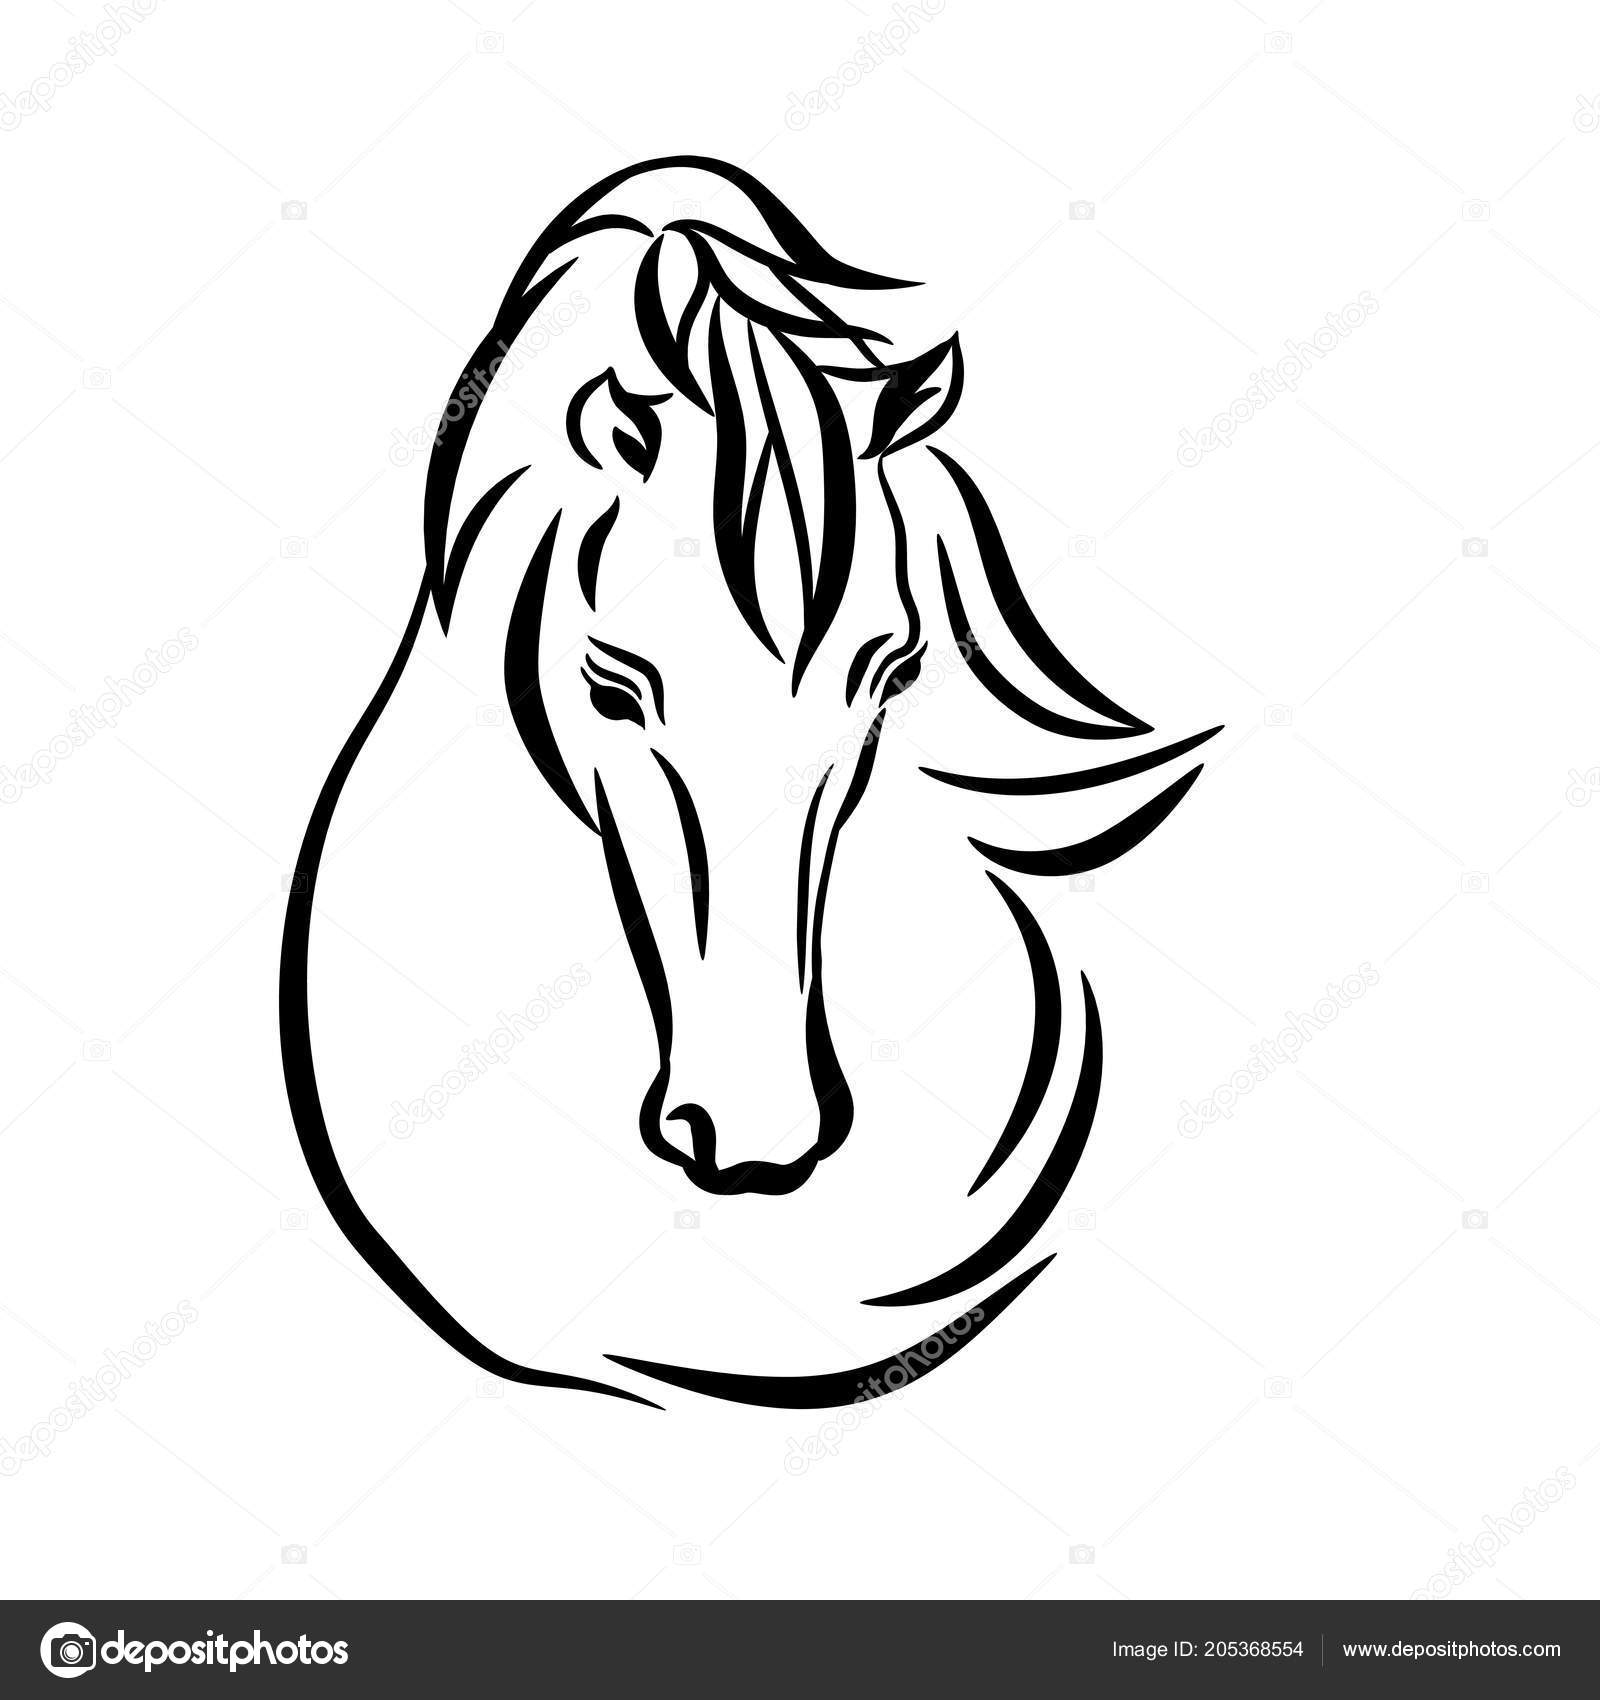 Horse Outline Template Outstanding Horse Outline Template Crest